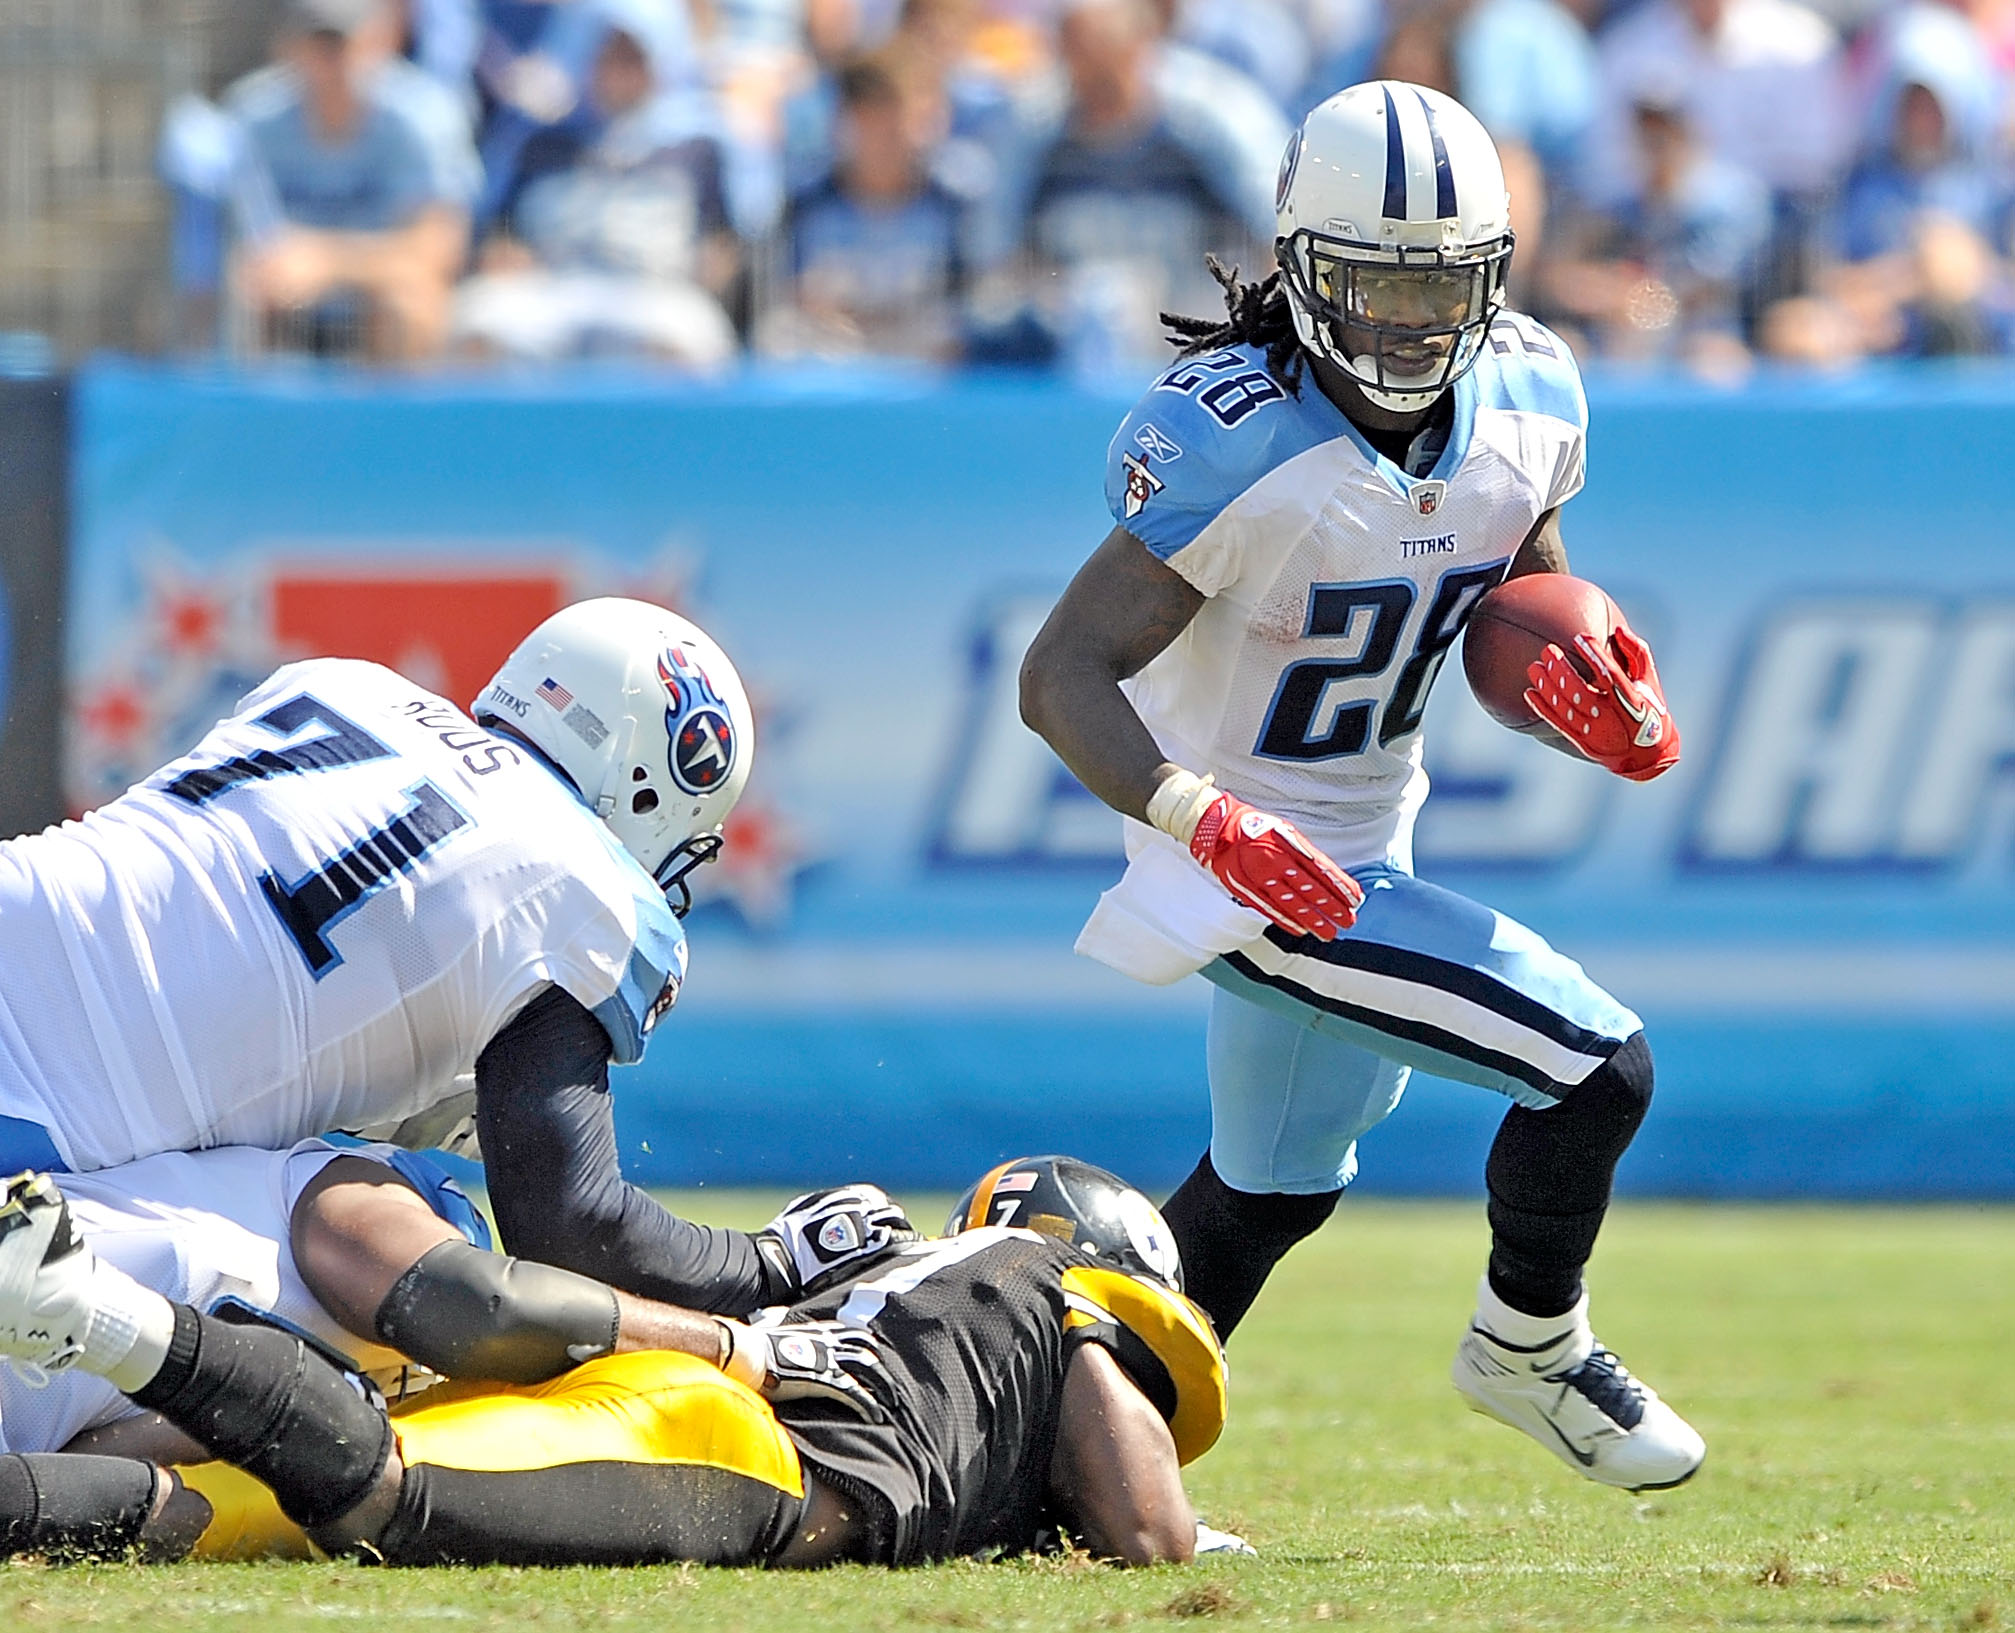 Chris Johnson looks to bounce back after last weeks disappointing performance